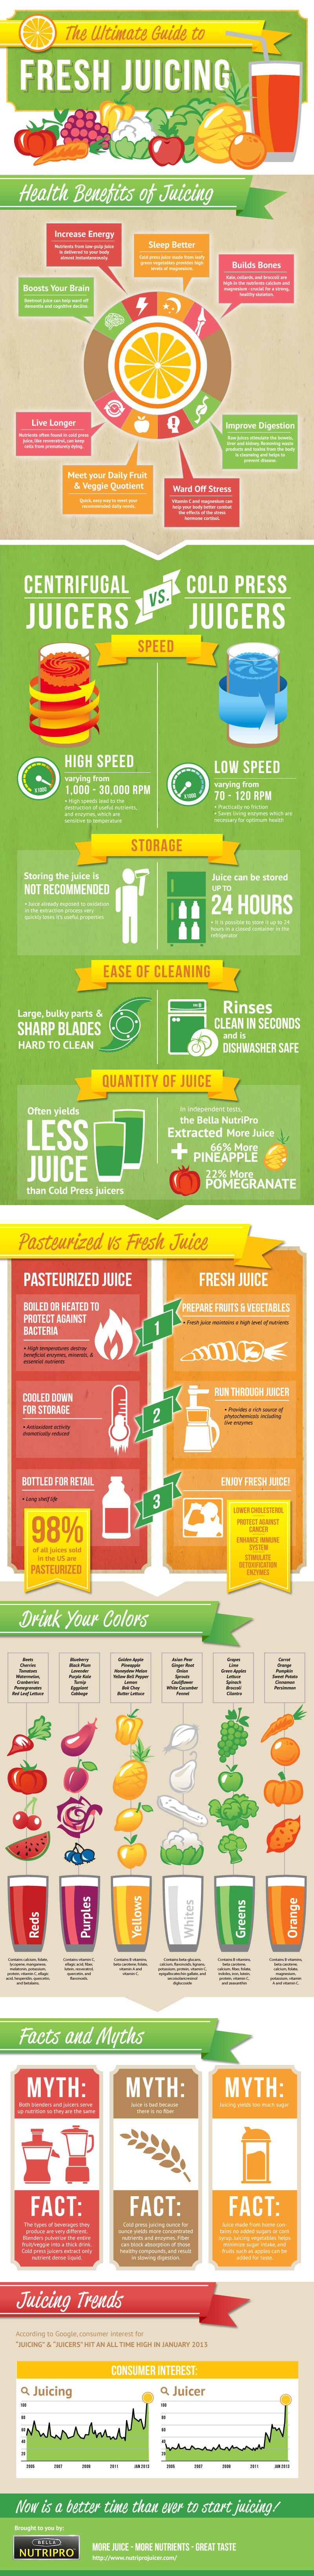 Everything you need to know in choosing what fruits to turn into a beverage infographic